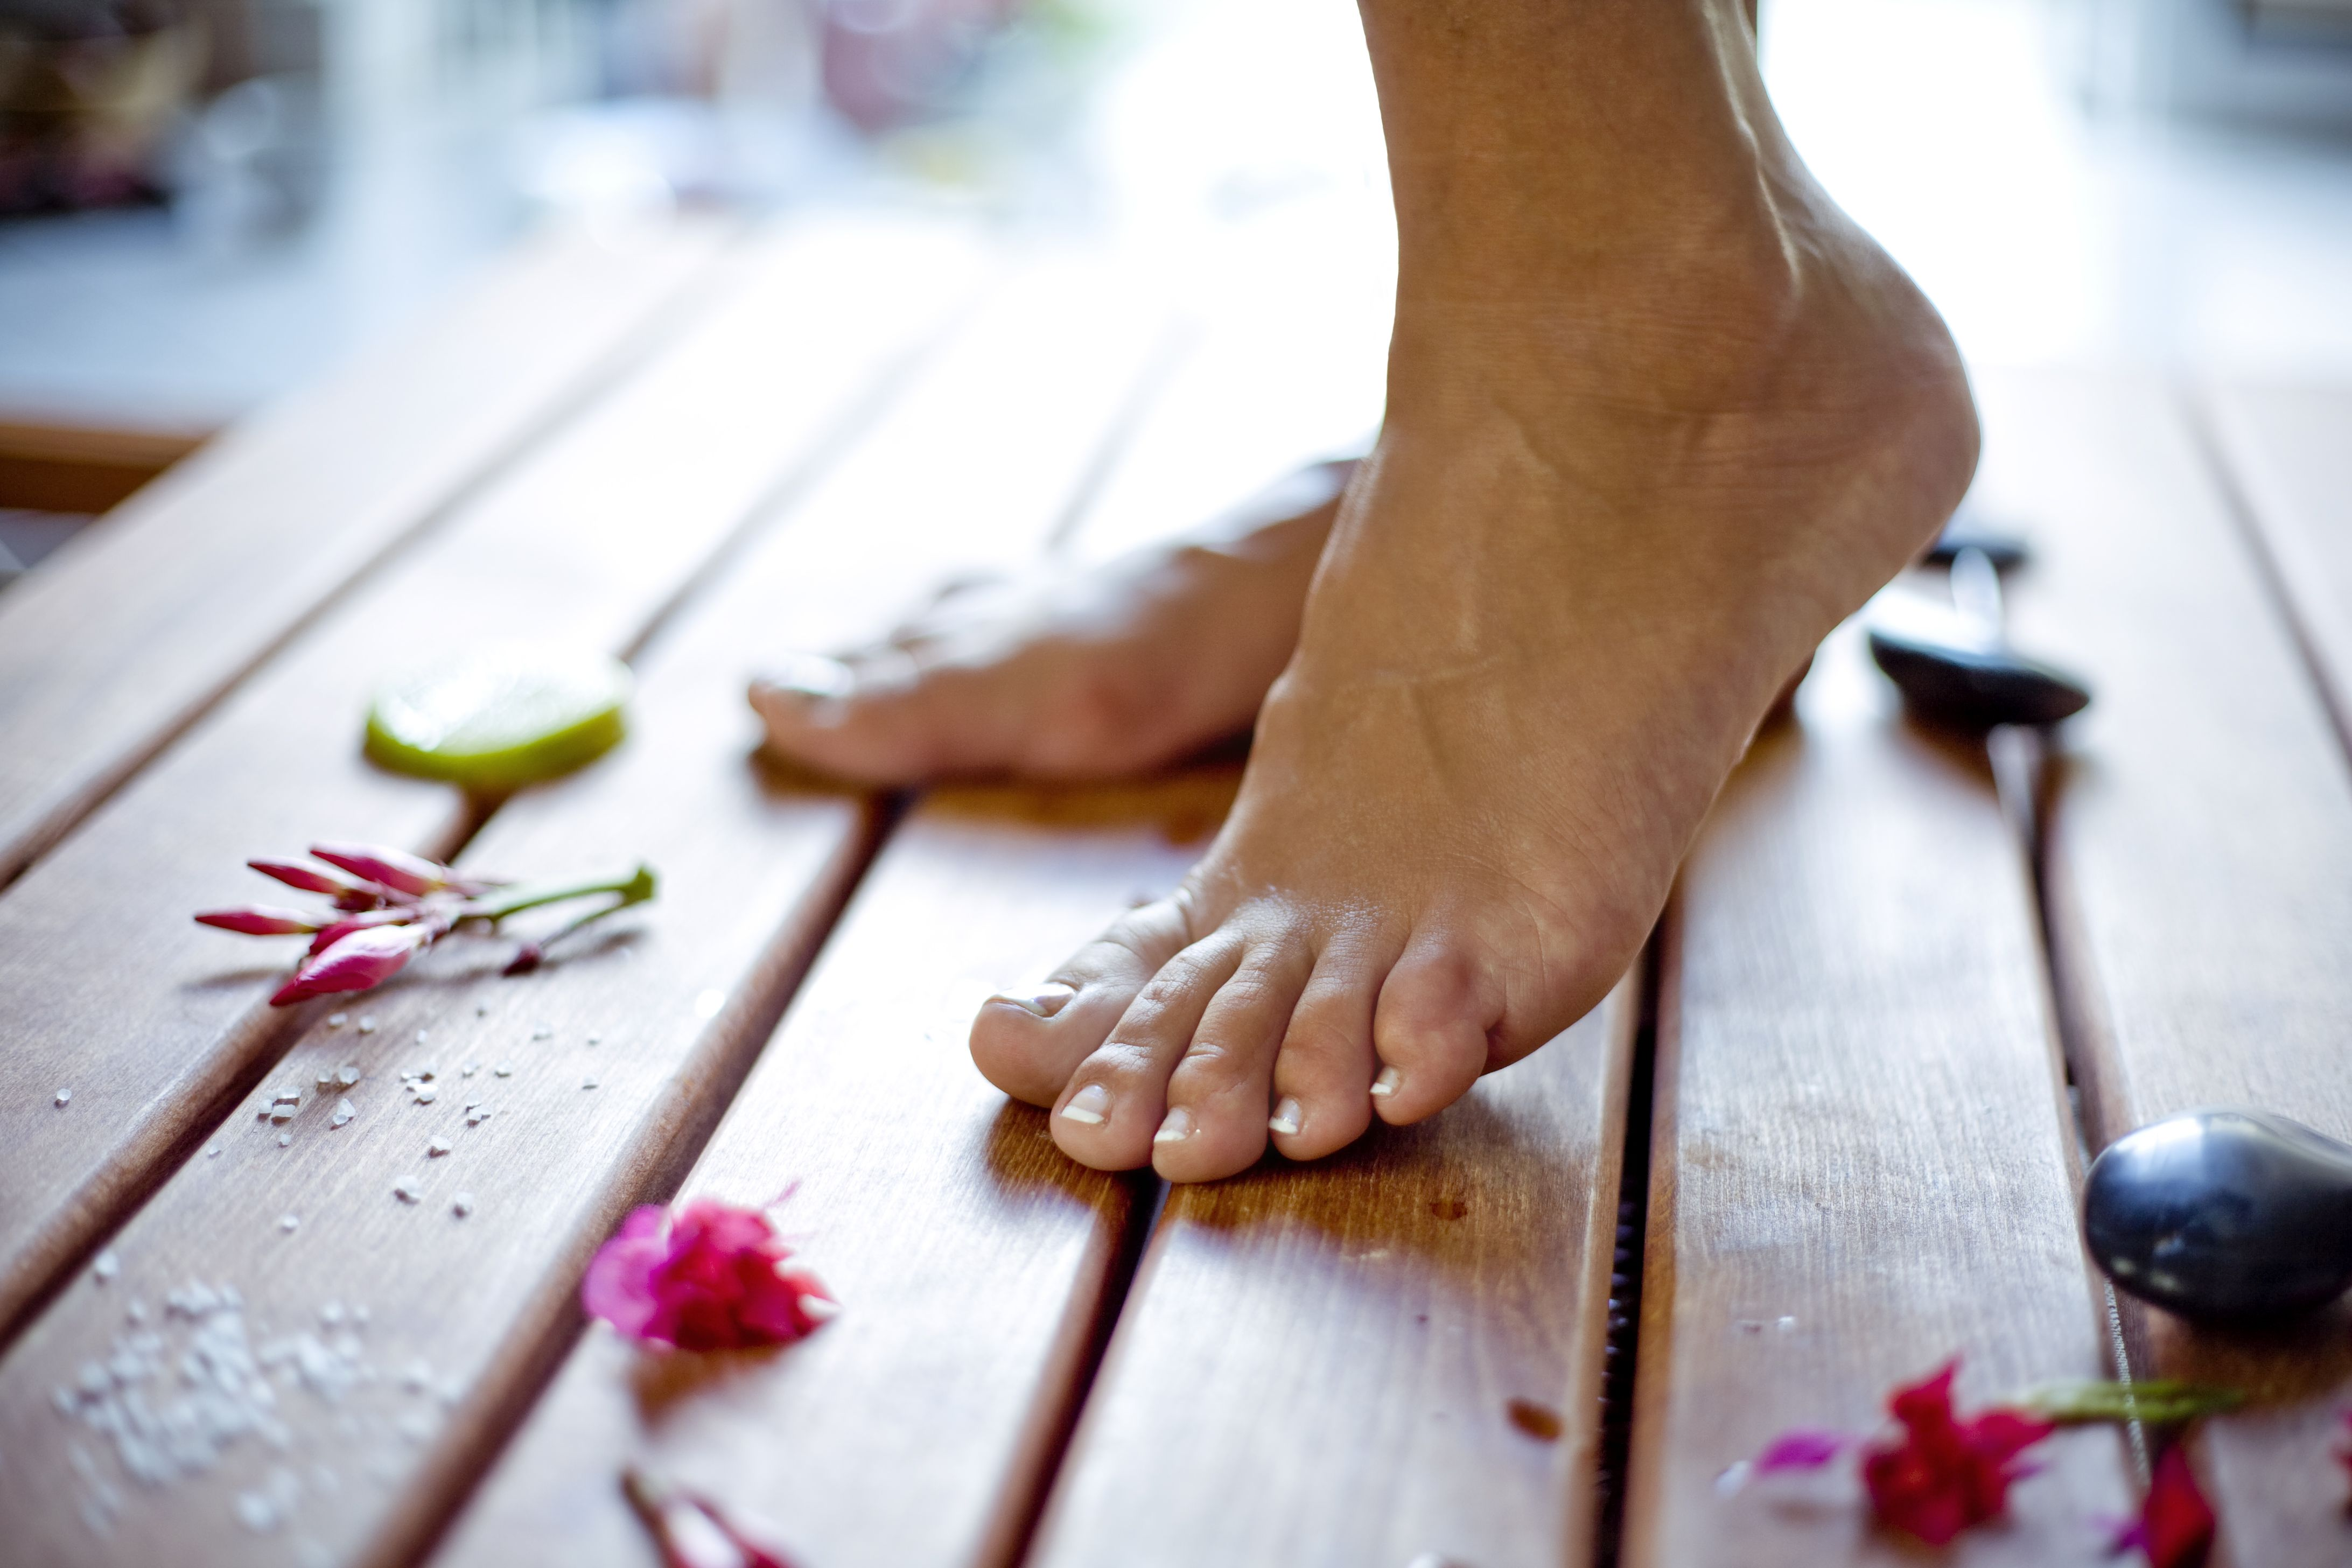 Squishy lump on top of foot - Soft Tissue Masses Are A Build Up Thickening And Hardening Of The Skin Usually Under The Ball Of The Foot Due To Consistent Pressure And Friction To